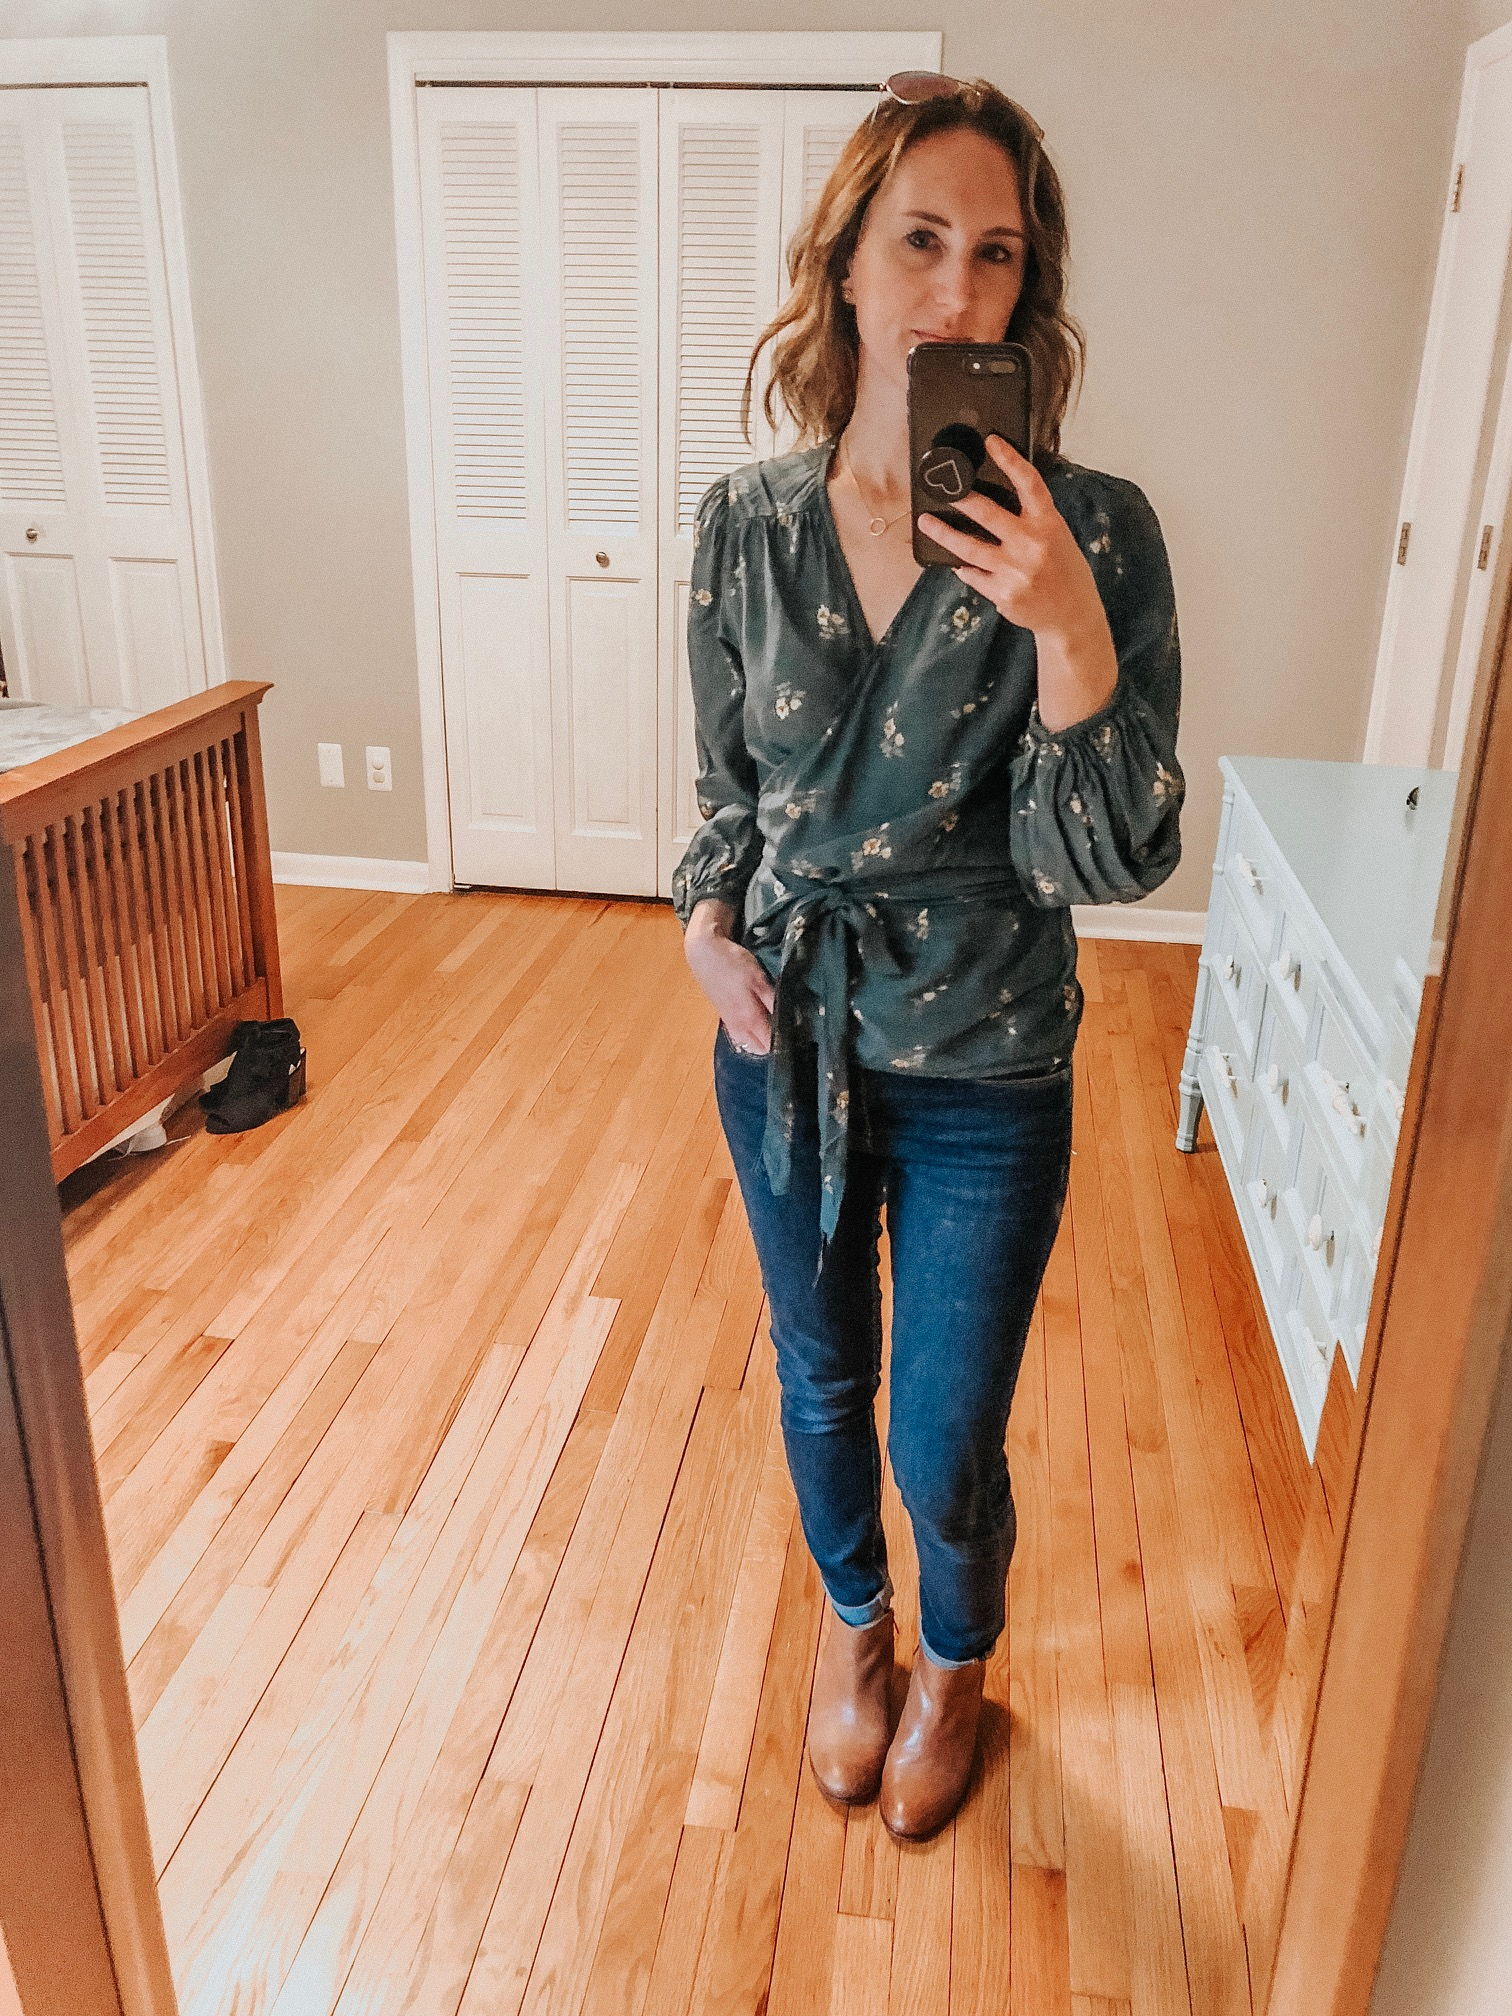 Fall Instagram Favorites | Daily Splendor Life and Style Blog | Wrap top, denim and booties #casualstyle #casualoutfit #momstyle #everydayfashion #fallstyle #fallneutrals